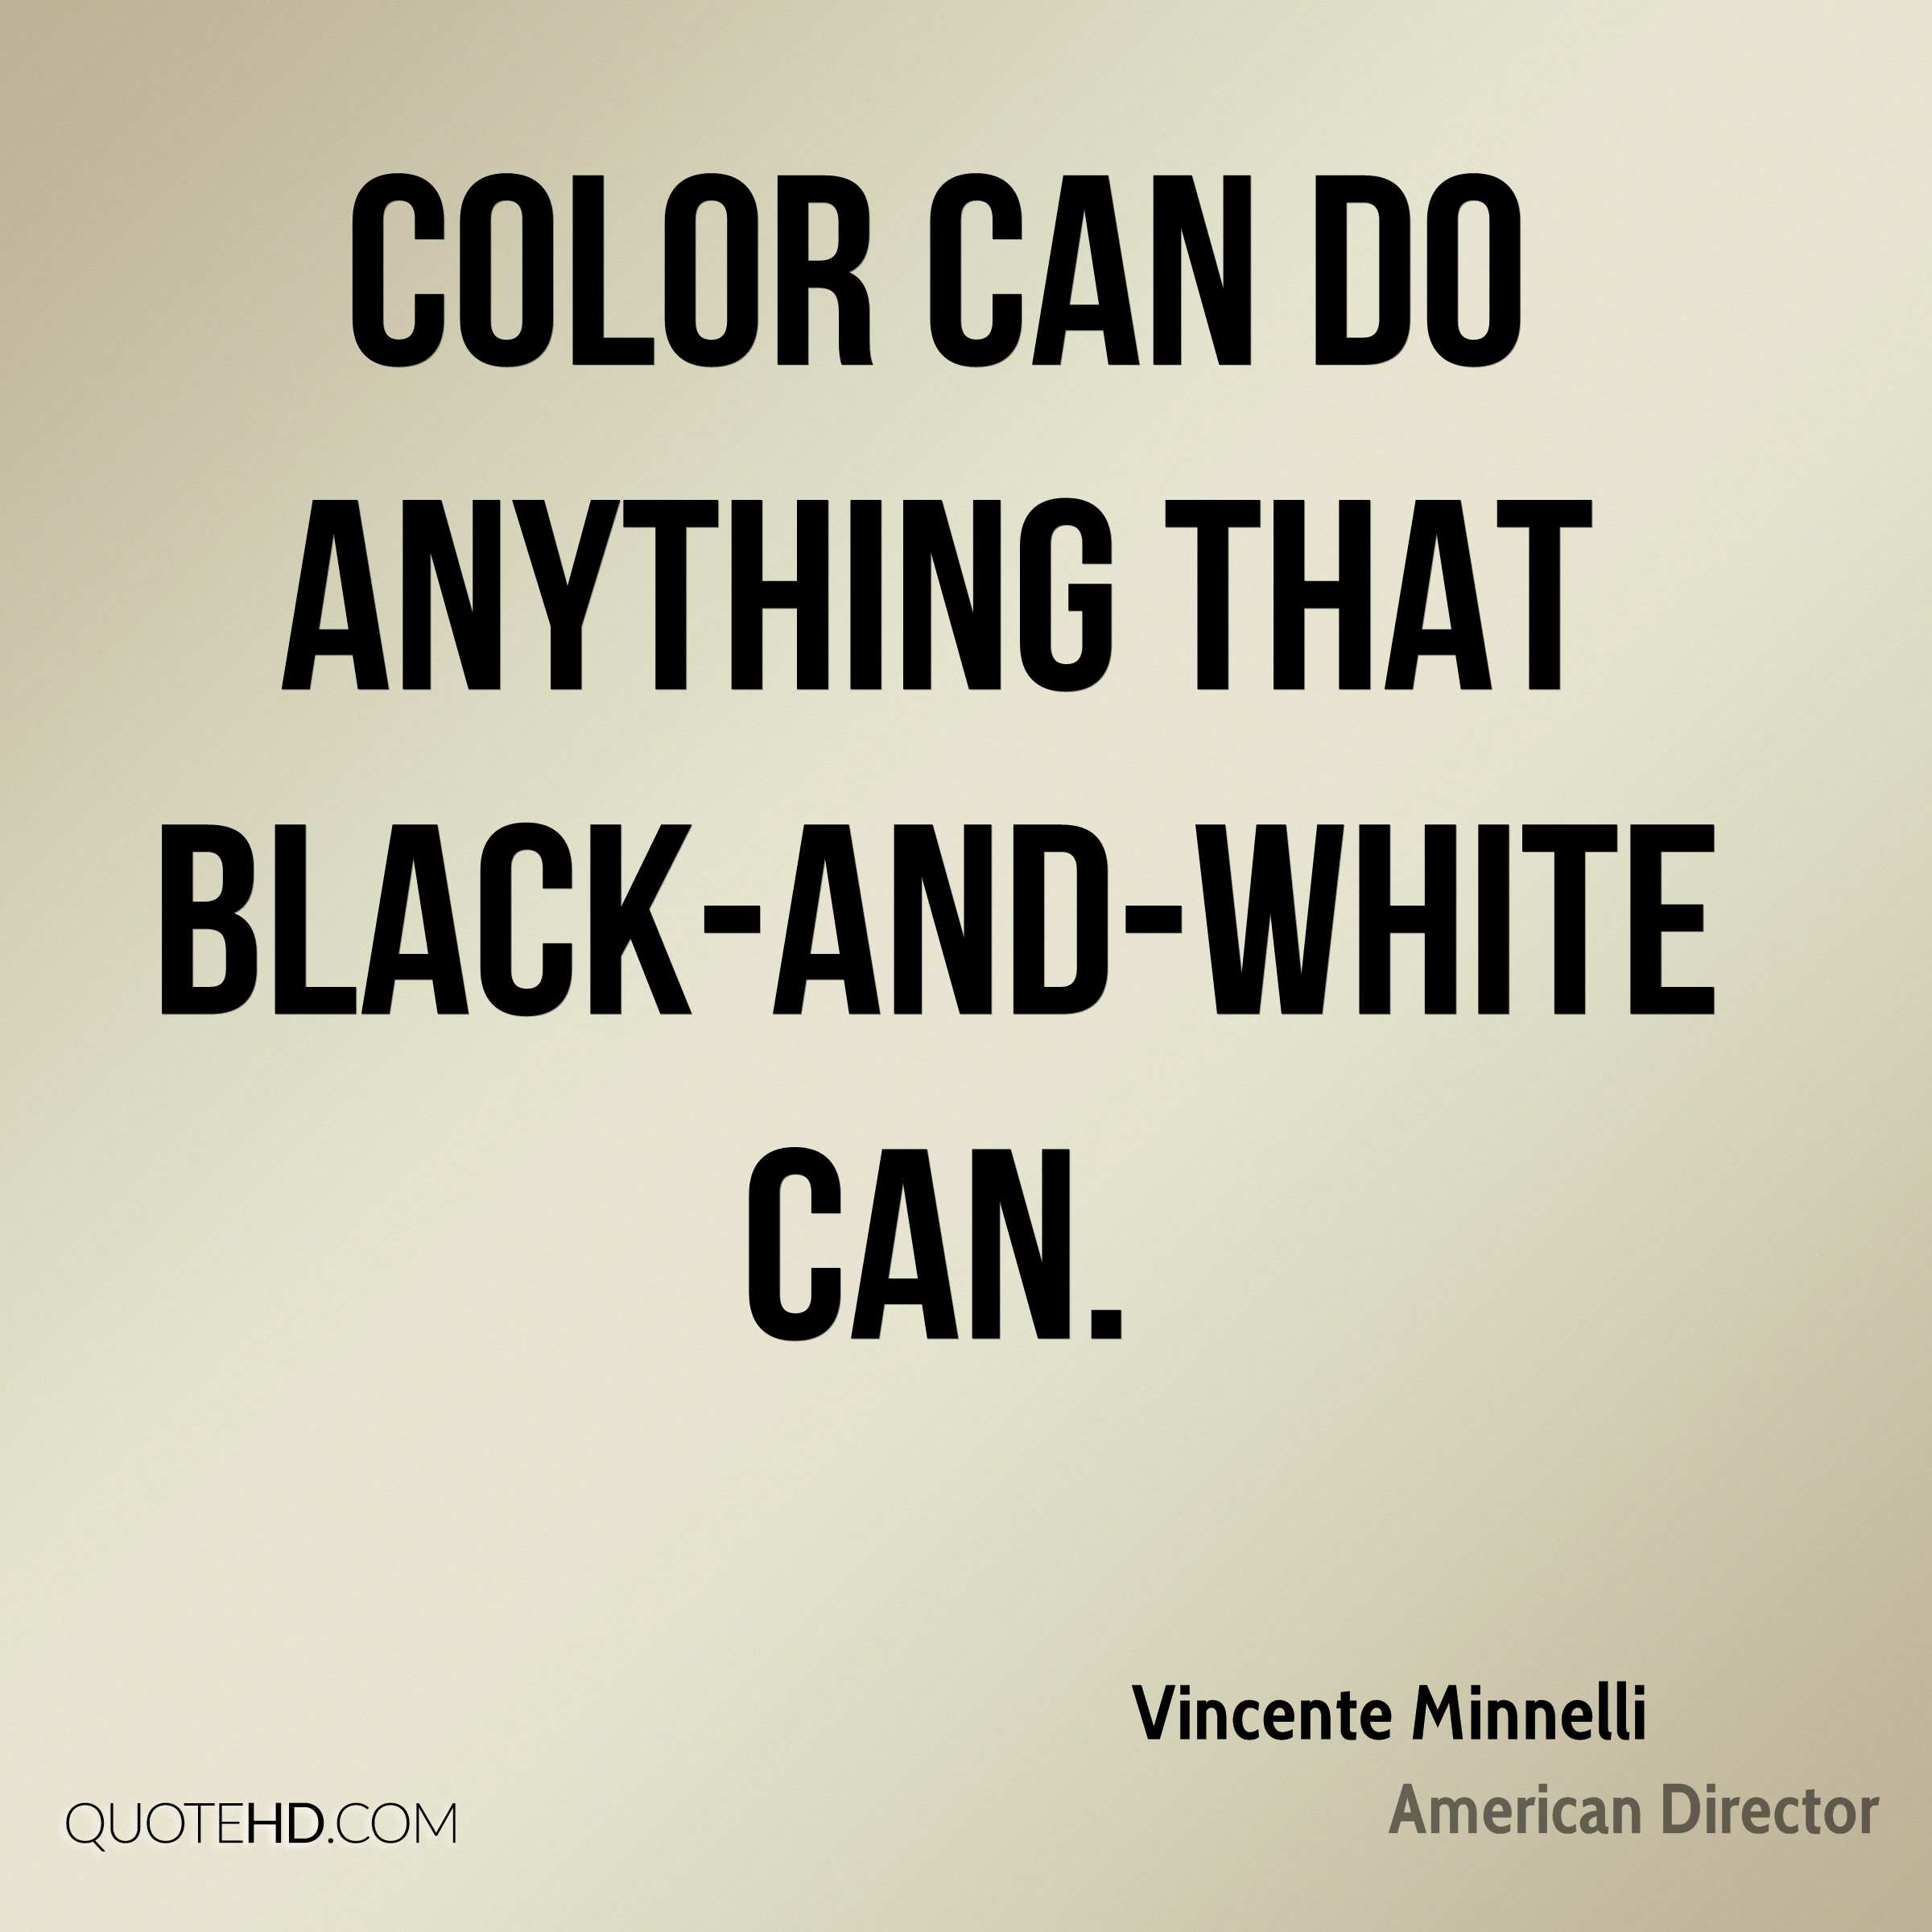 Color can do anything that black-and-white can.